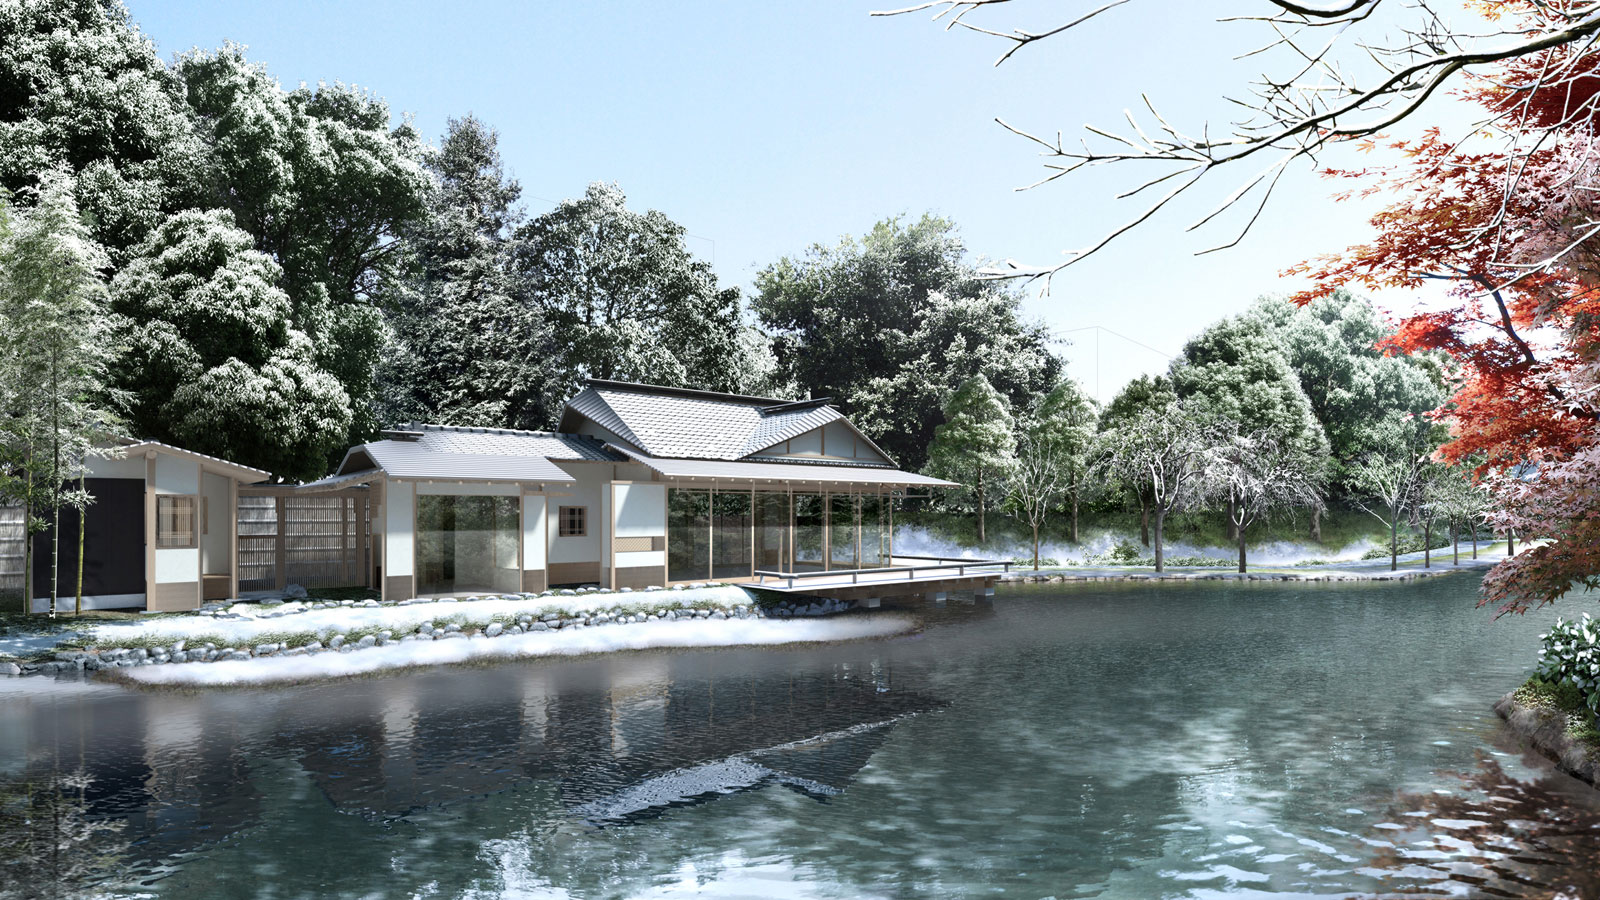 Four Seasons Hotel Kyoto Open's In Japan's Ancient Imperial Capital 11